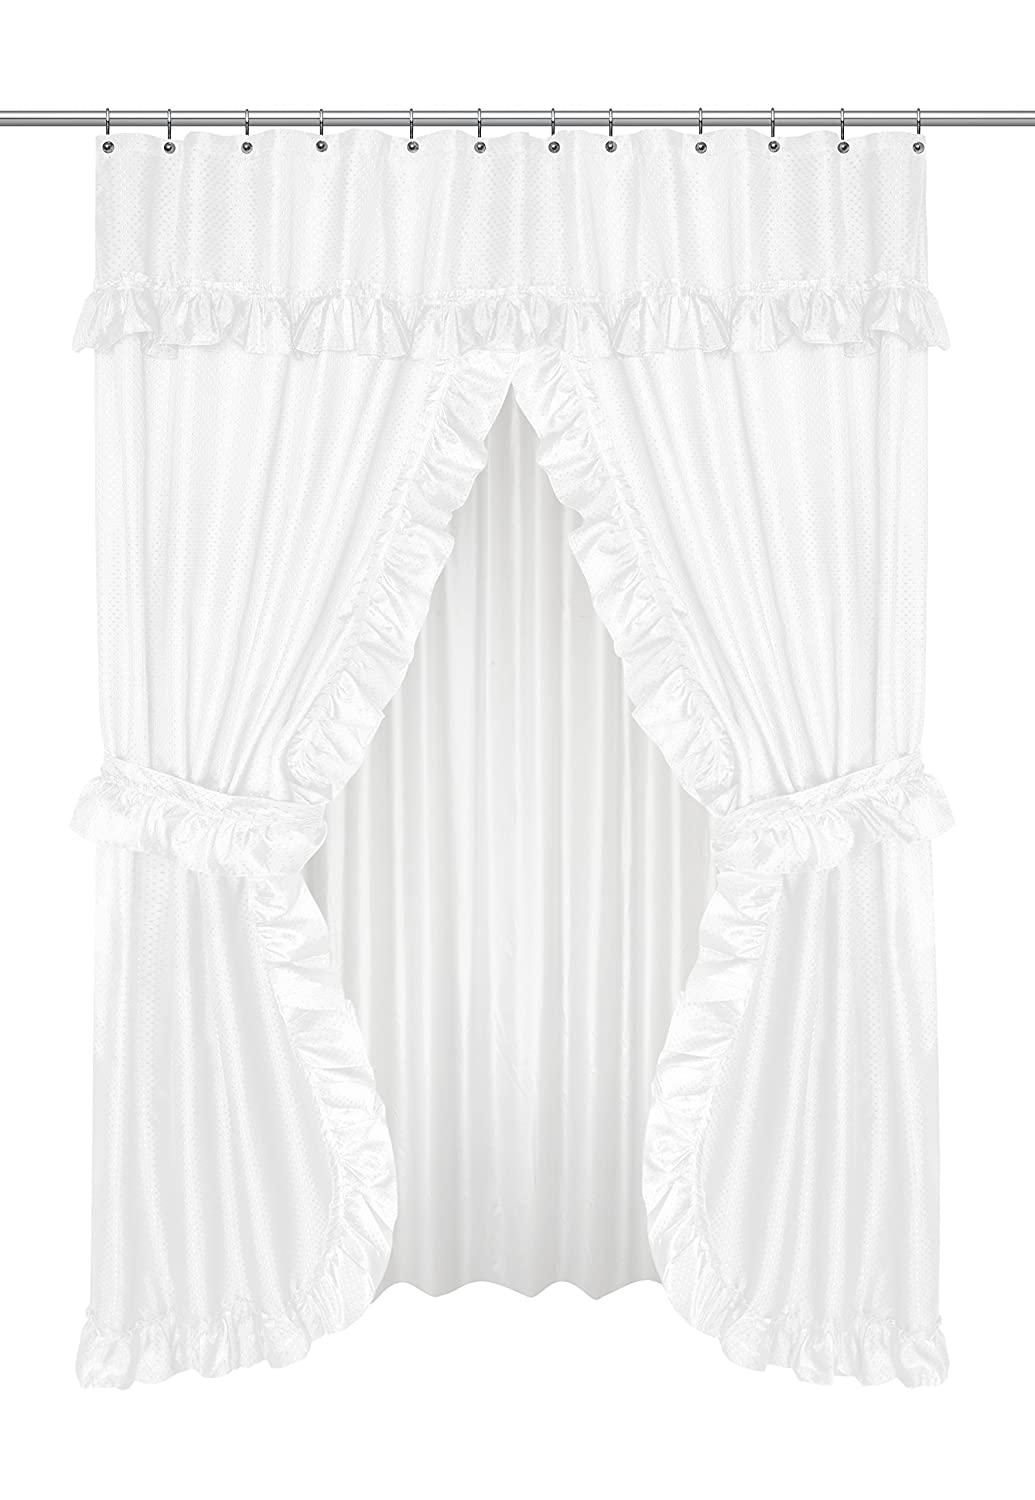 Carnation Home Fashions FSCD-L/21 Lauren Double Swag Shower Curtain White